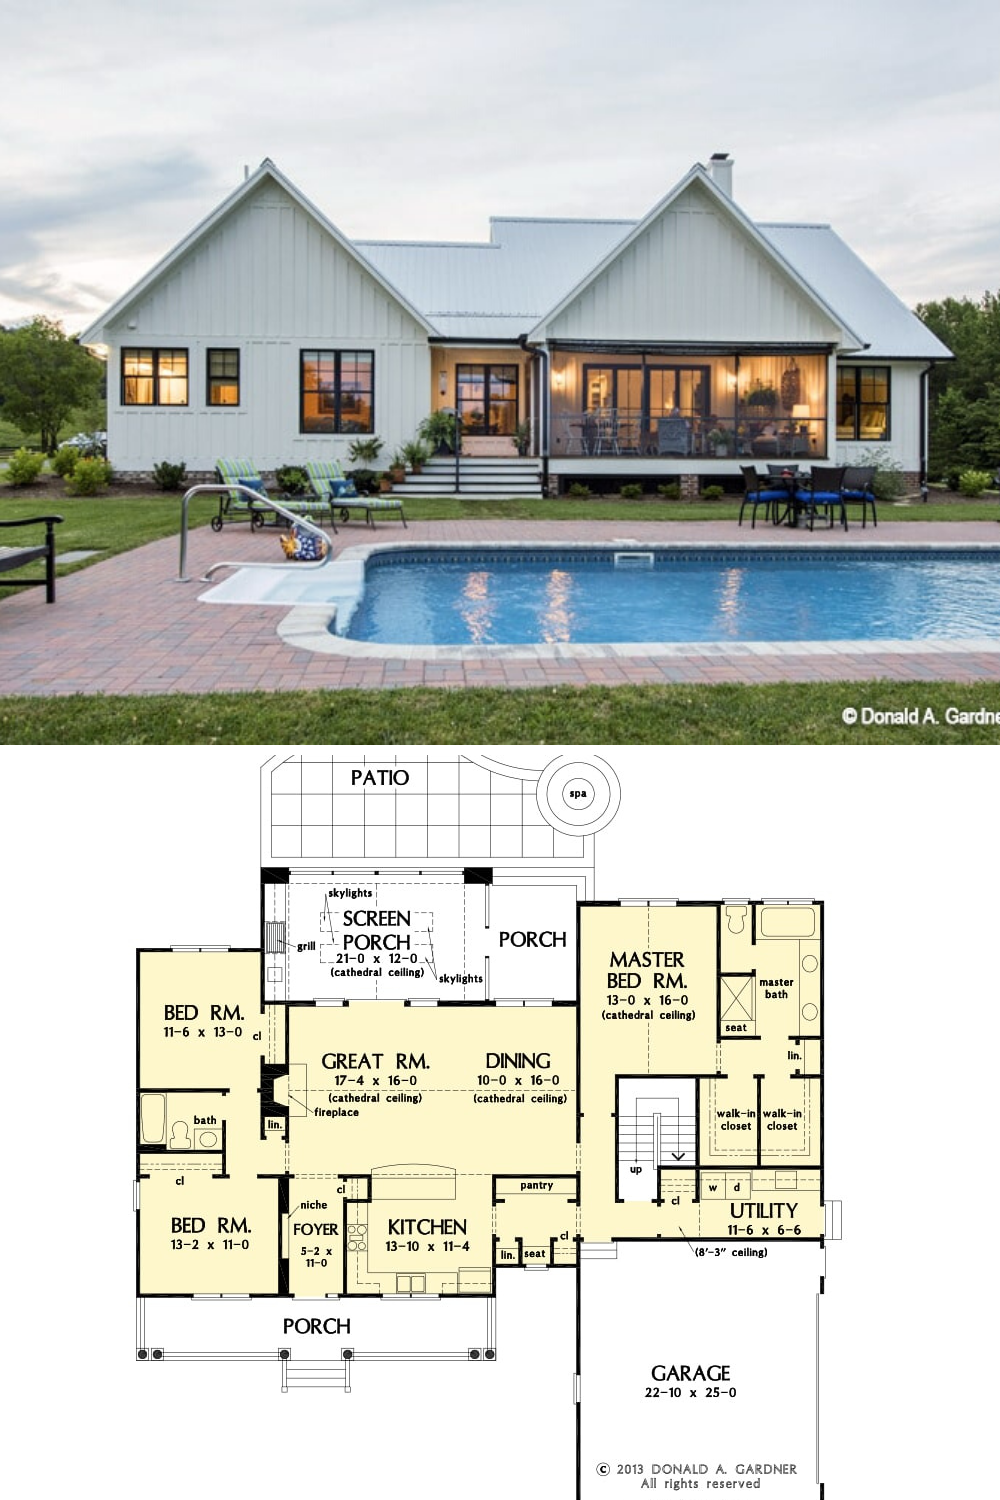 Single Story 3 Bedroom The Coleraine Home Floor Plan In 2020 Pool House Plans Beautiful House Plans Craftsman House Plans